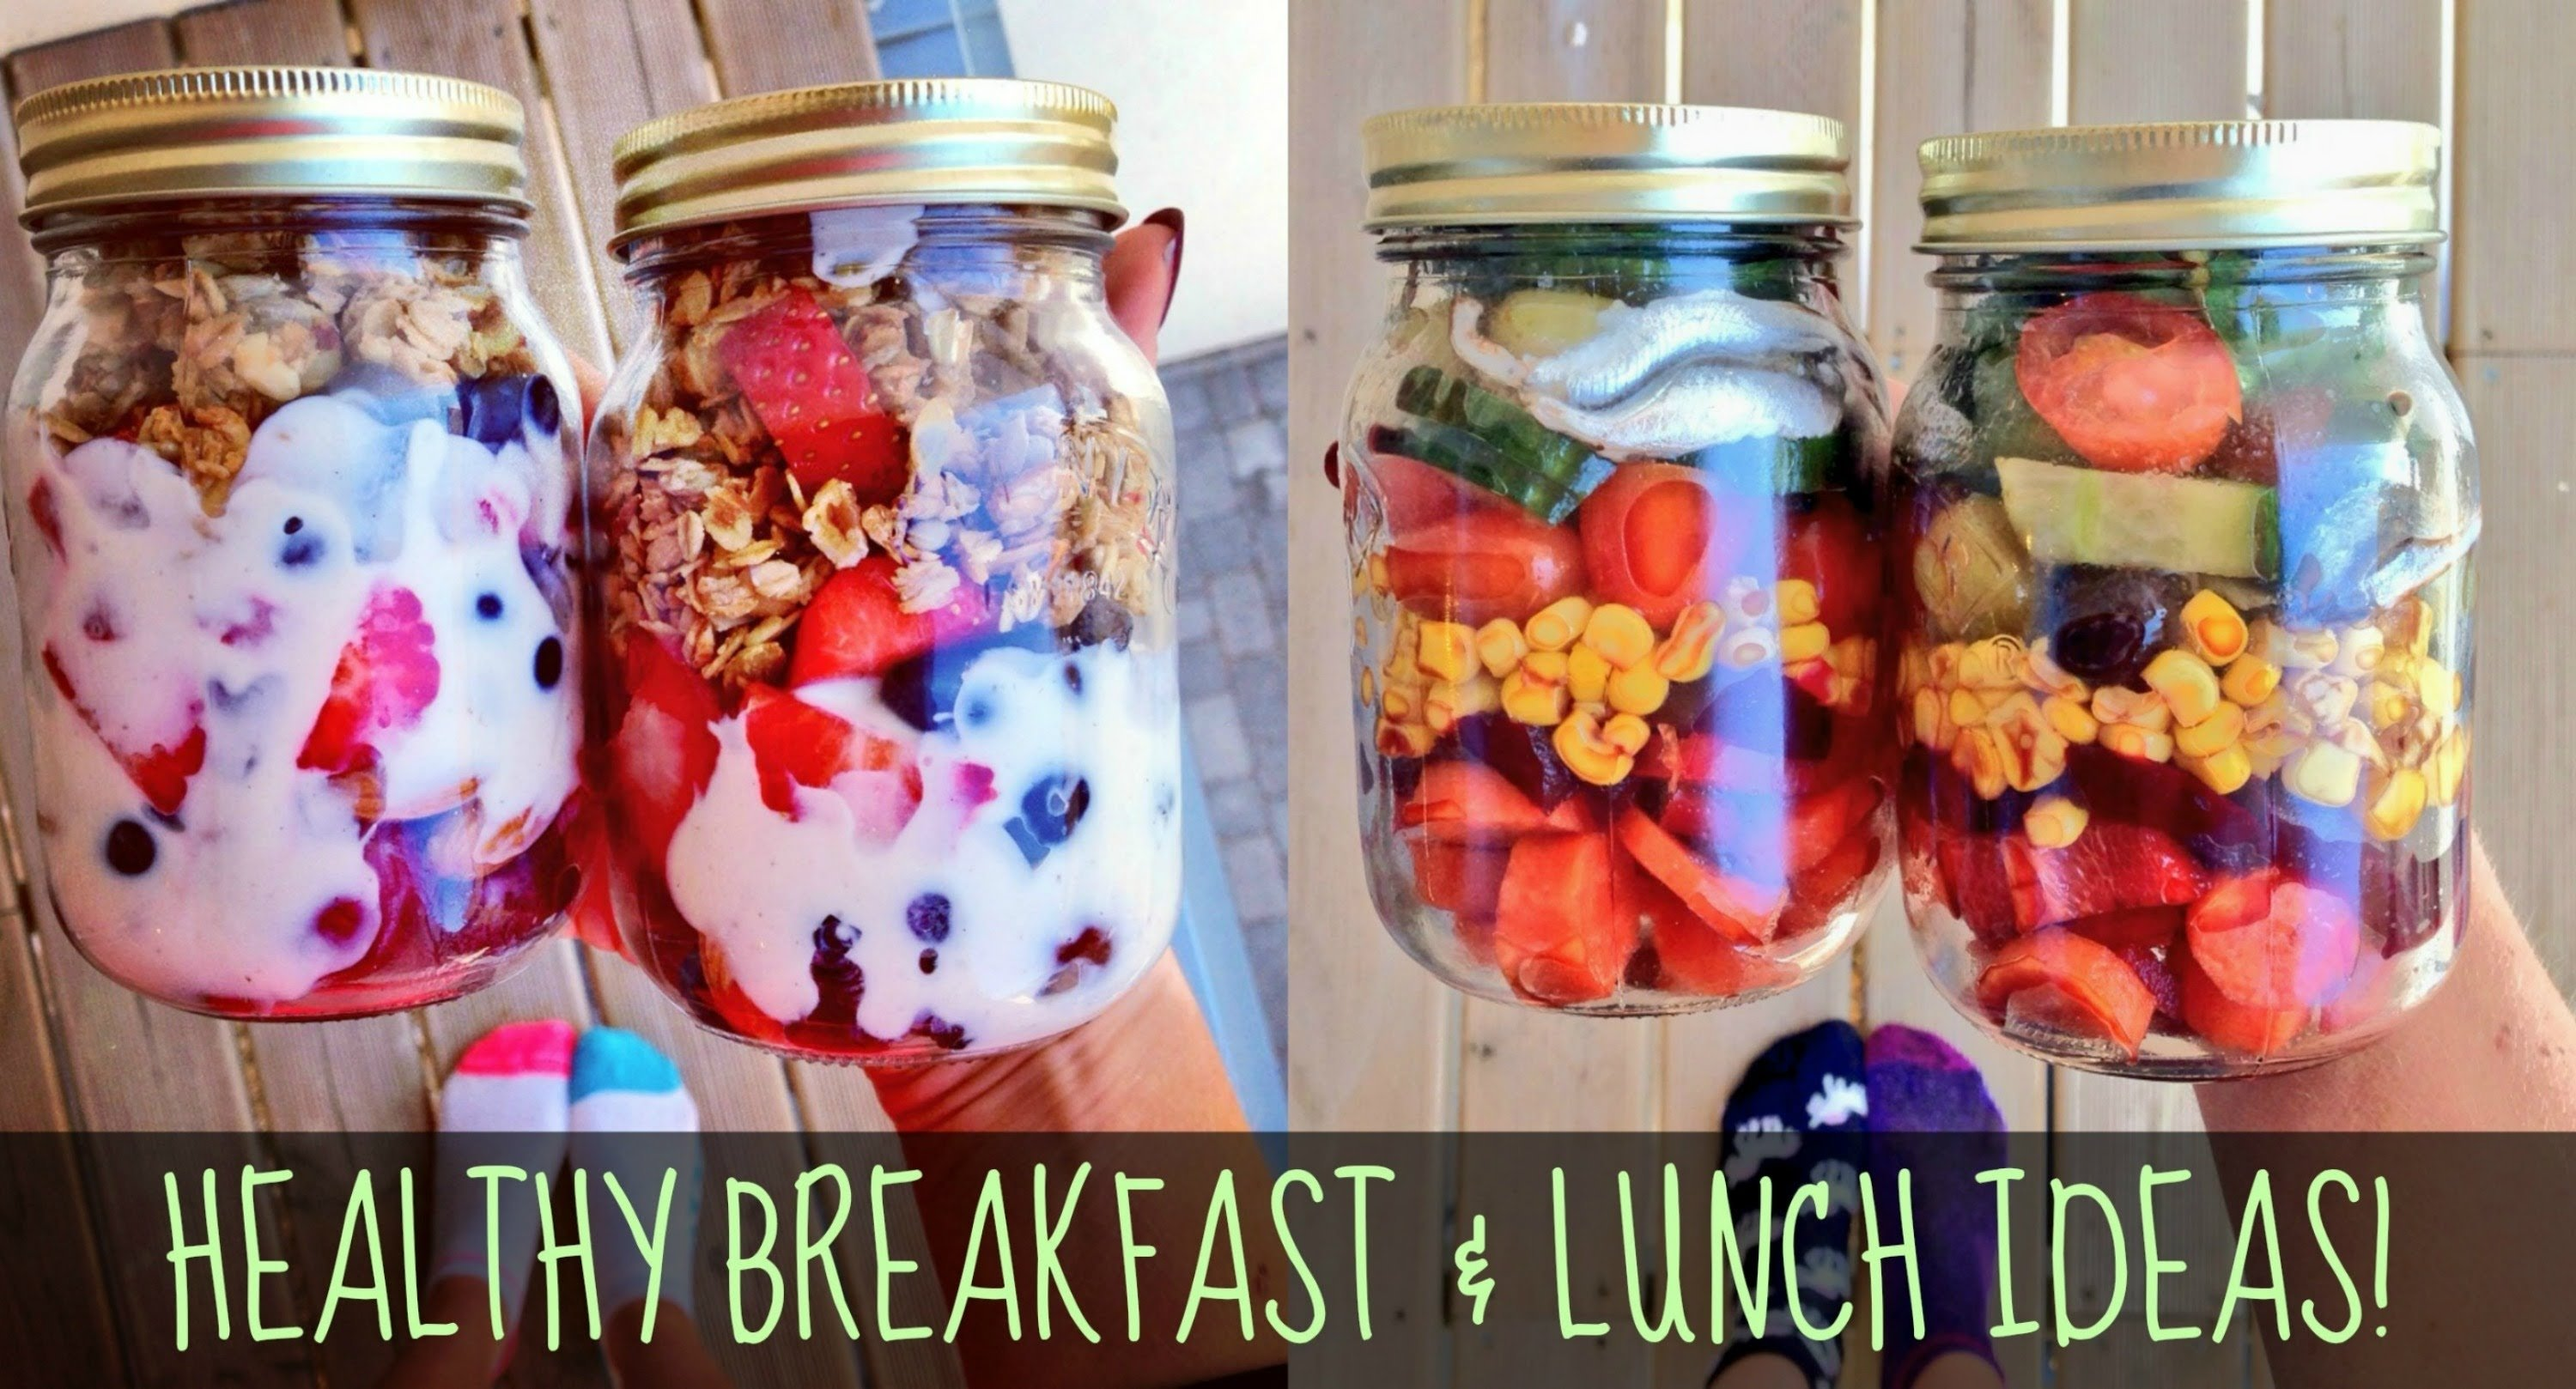 10 Attractive Healthy Breakfast And Lunch Ideas healthy breakfast and lunch ideas for school work youtube 1 2020